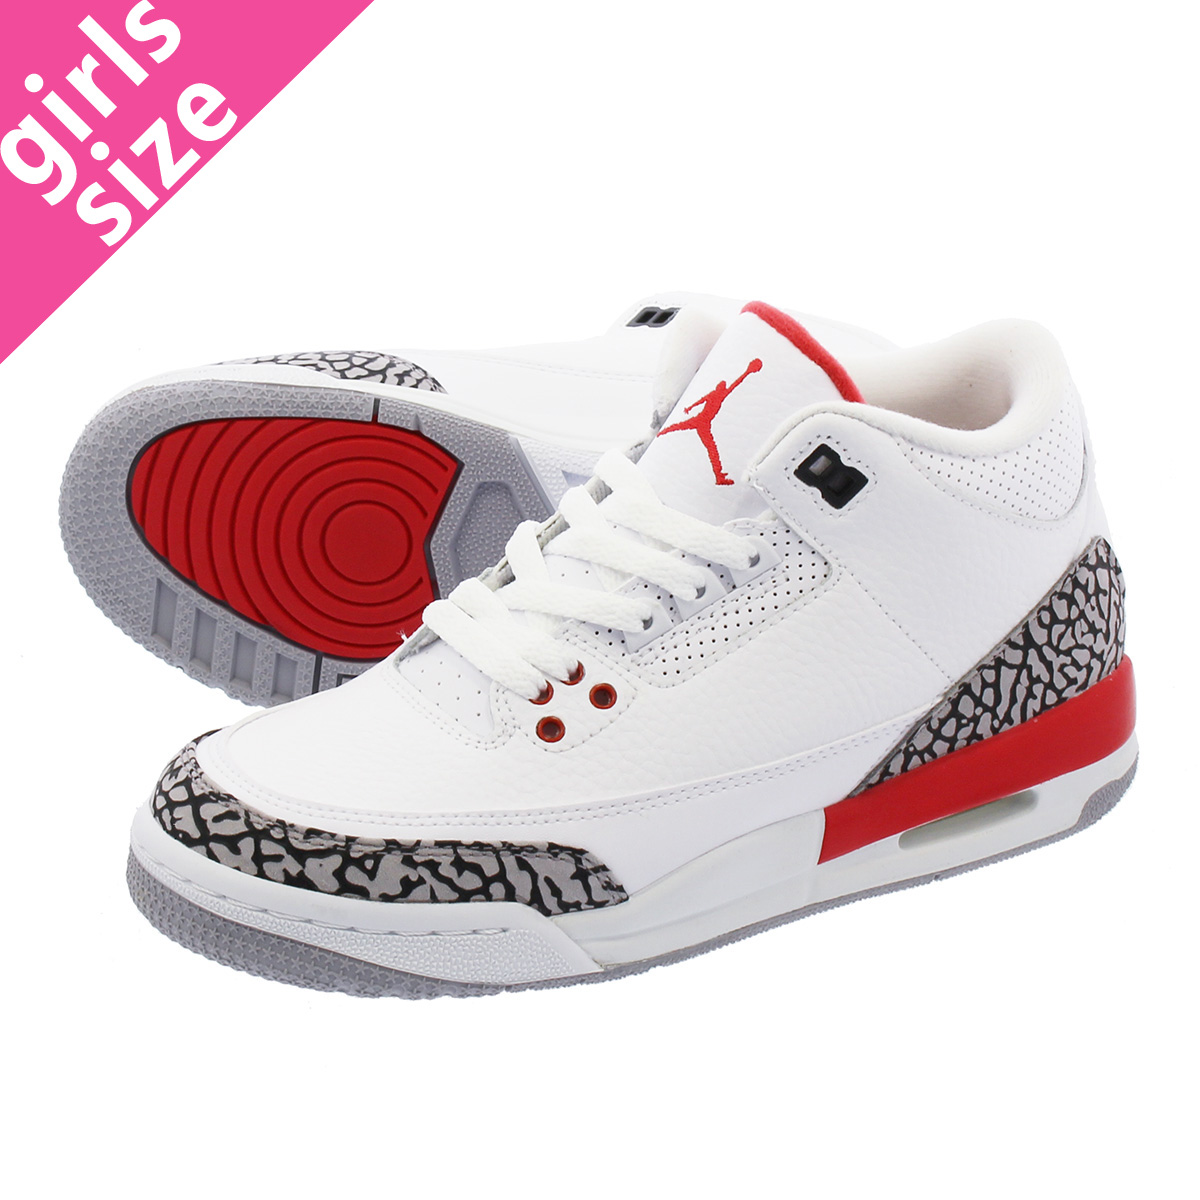 1ccd73cbad9753 NIKE AIR JORDAN 3 RETRO BG Nike Air Jordan 3 nostalgic BG WHITE CEMENT GREY FIRE  RED 398